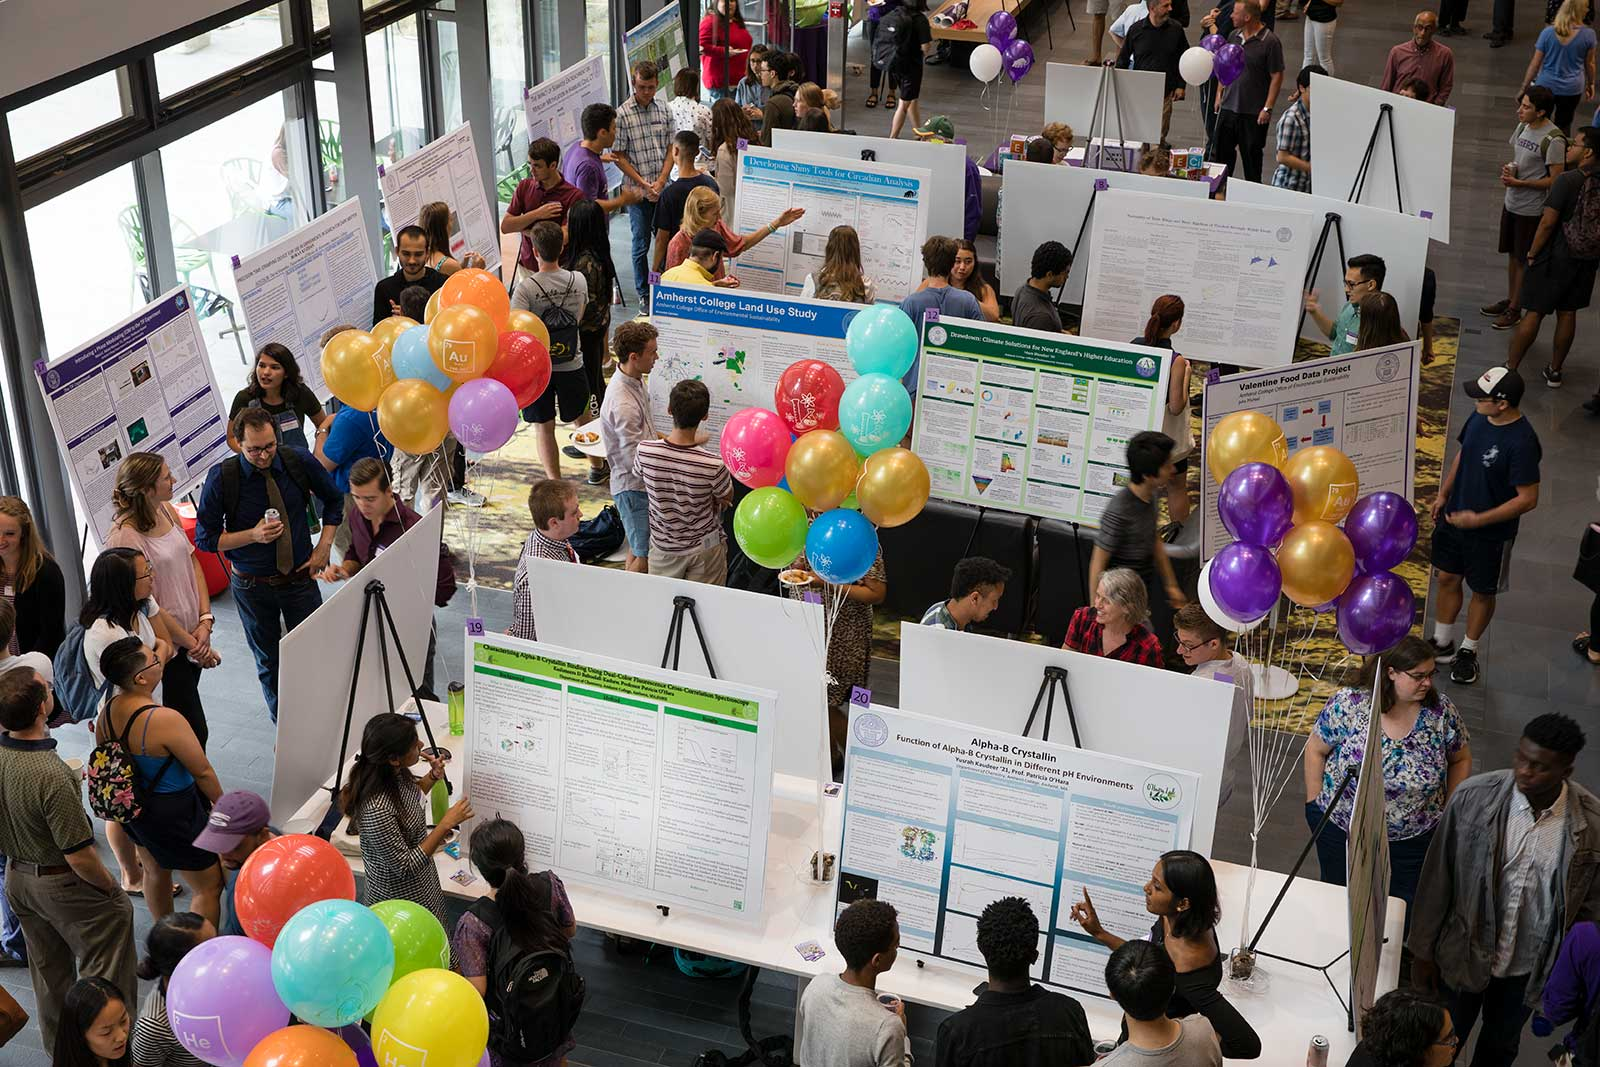 The Summer Research Poster Session in the K. Frank Austen Biology Research Collaboration Space